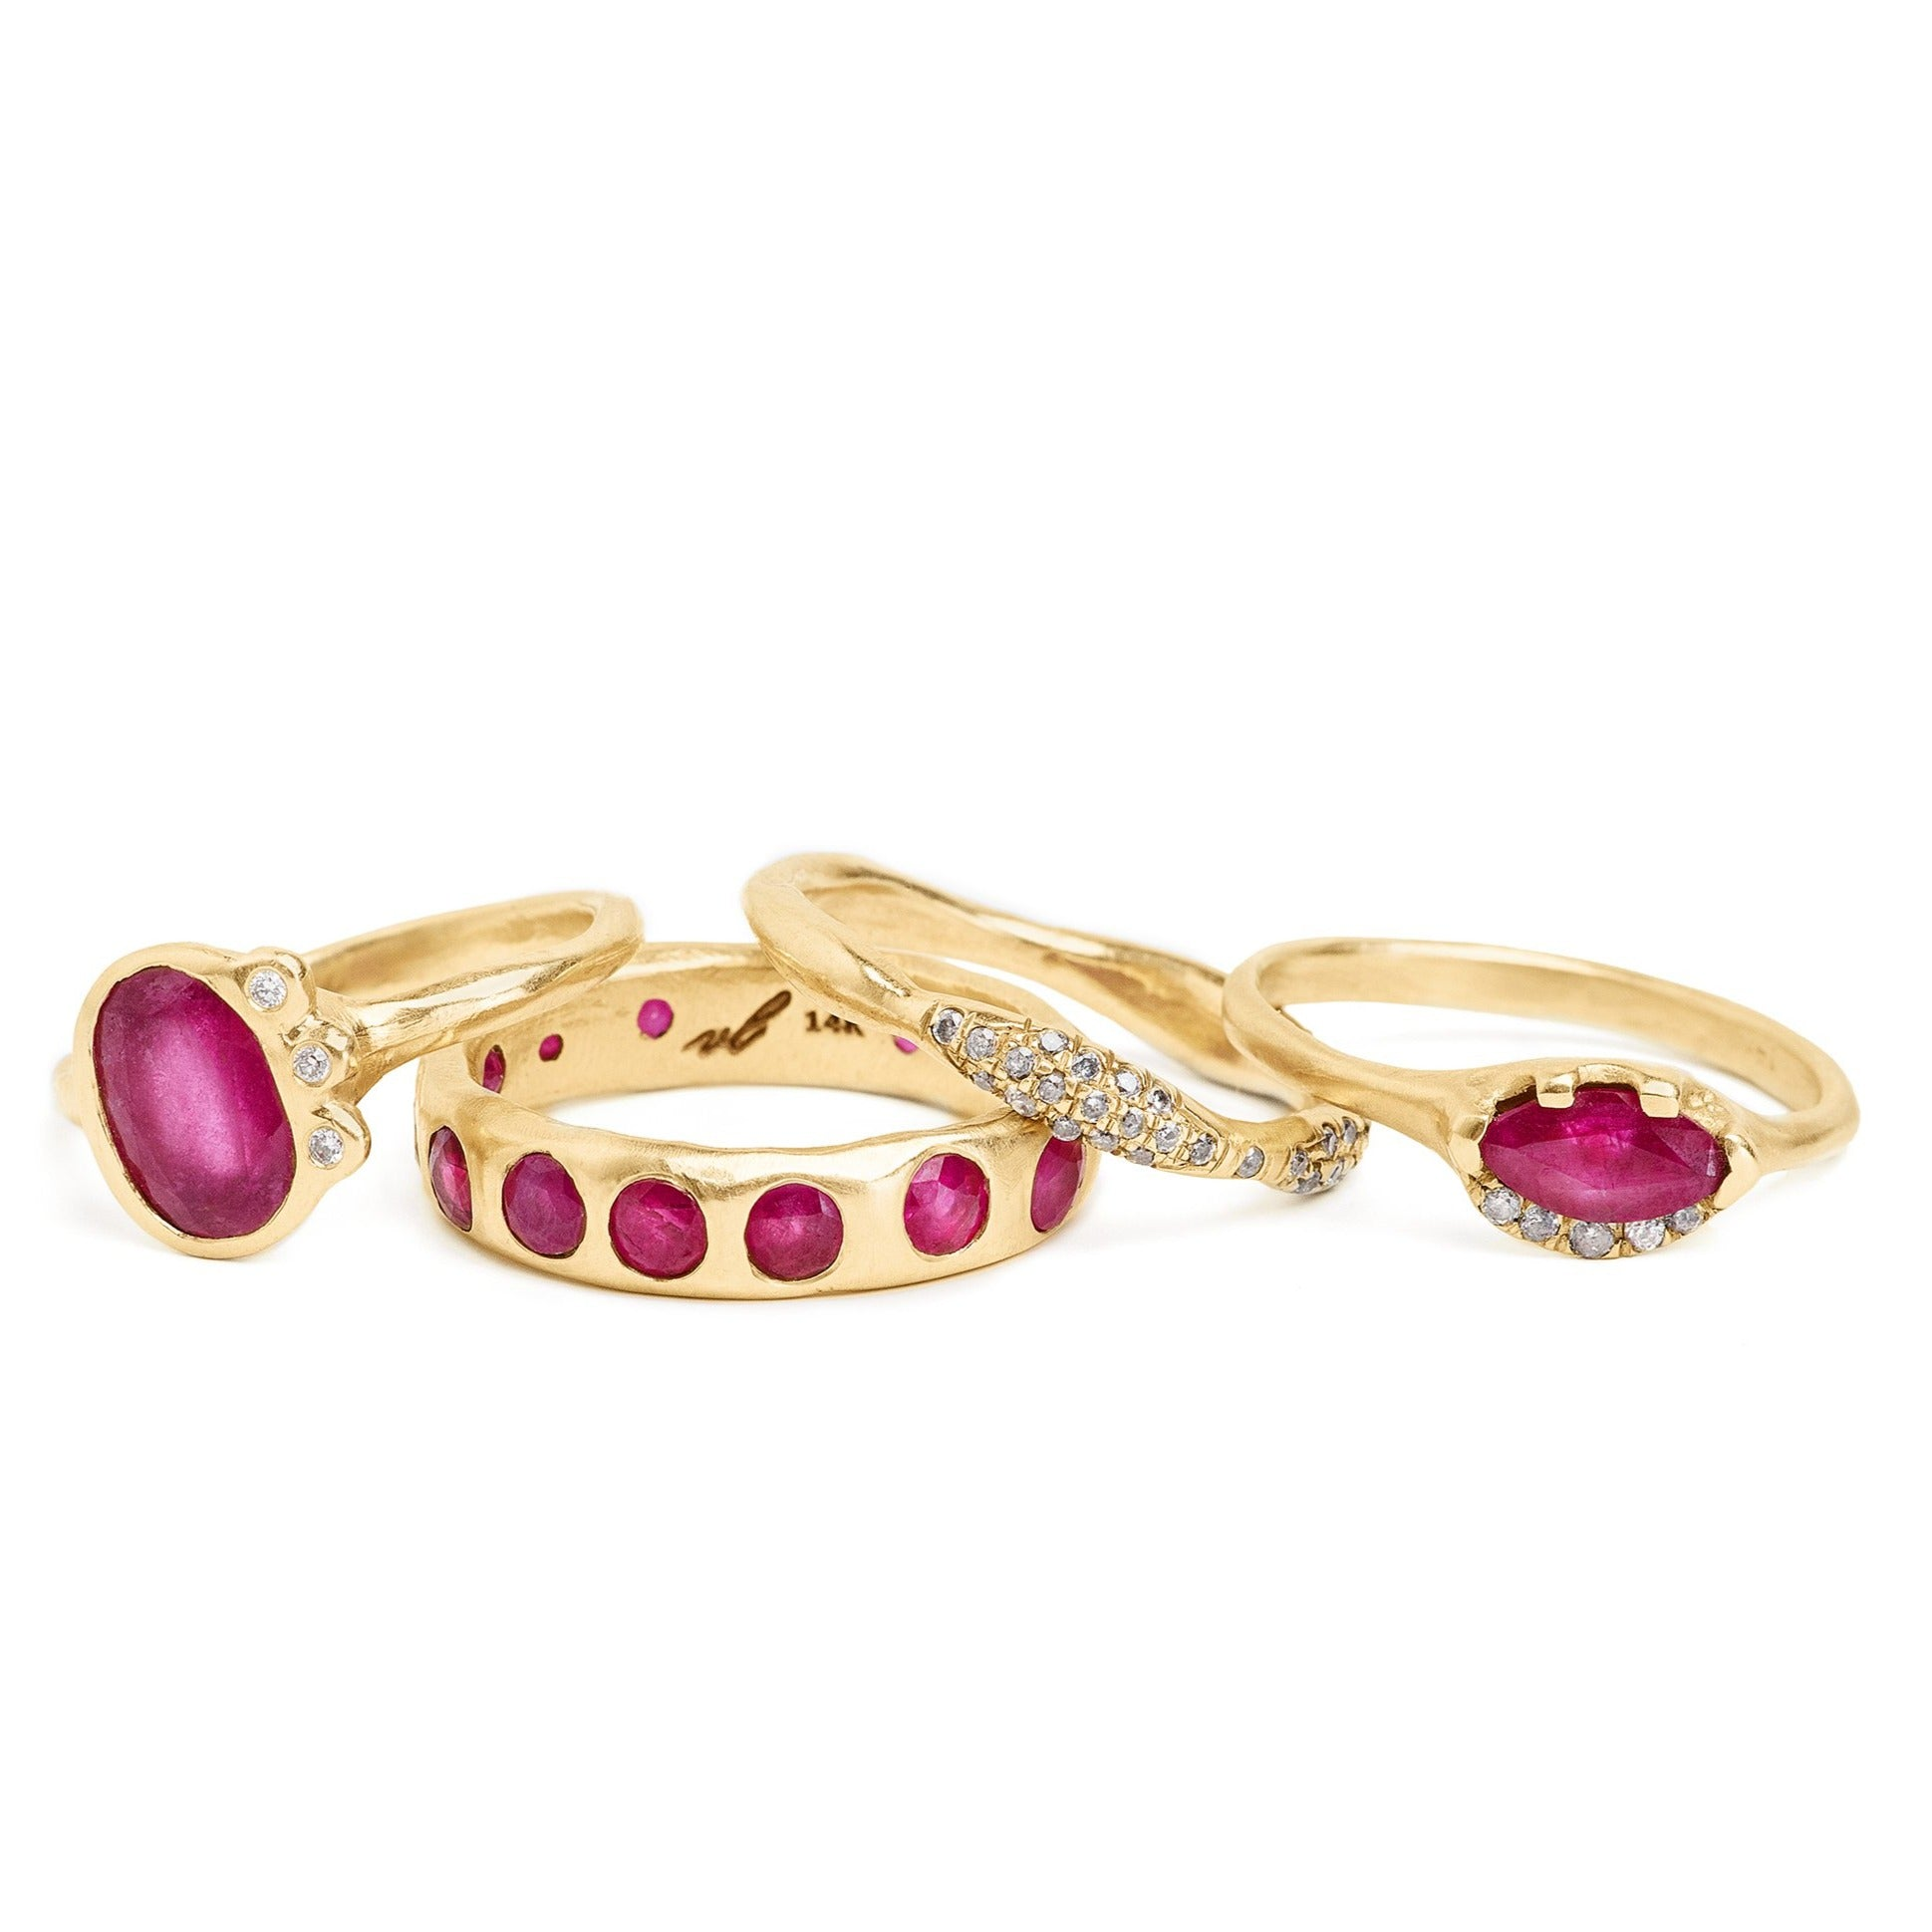 unique ruby rings, organic handmade gold settings and ruby eternity band